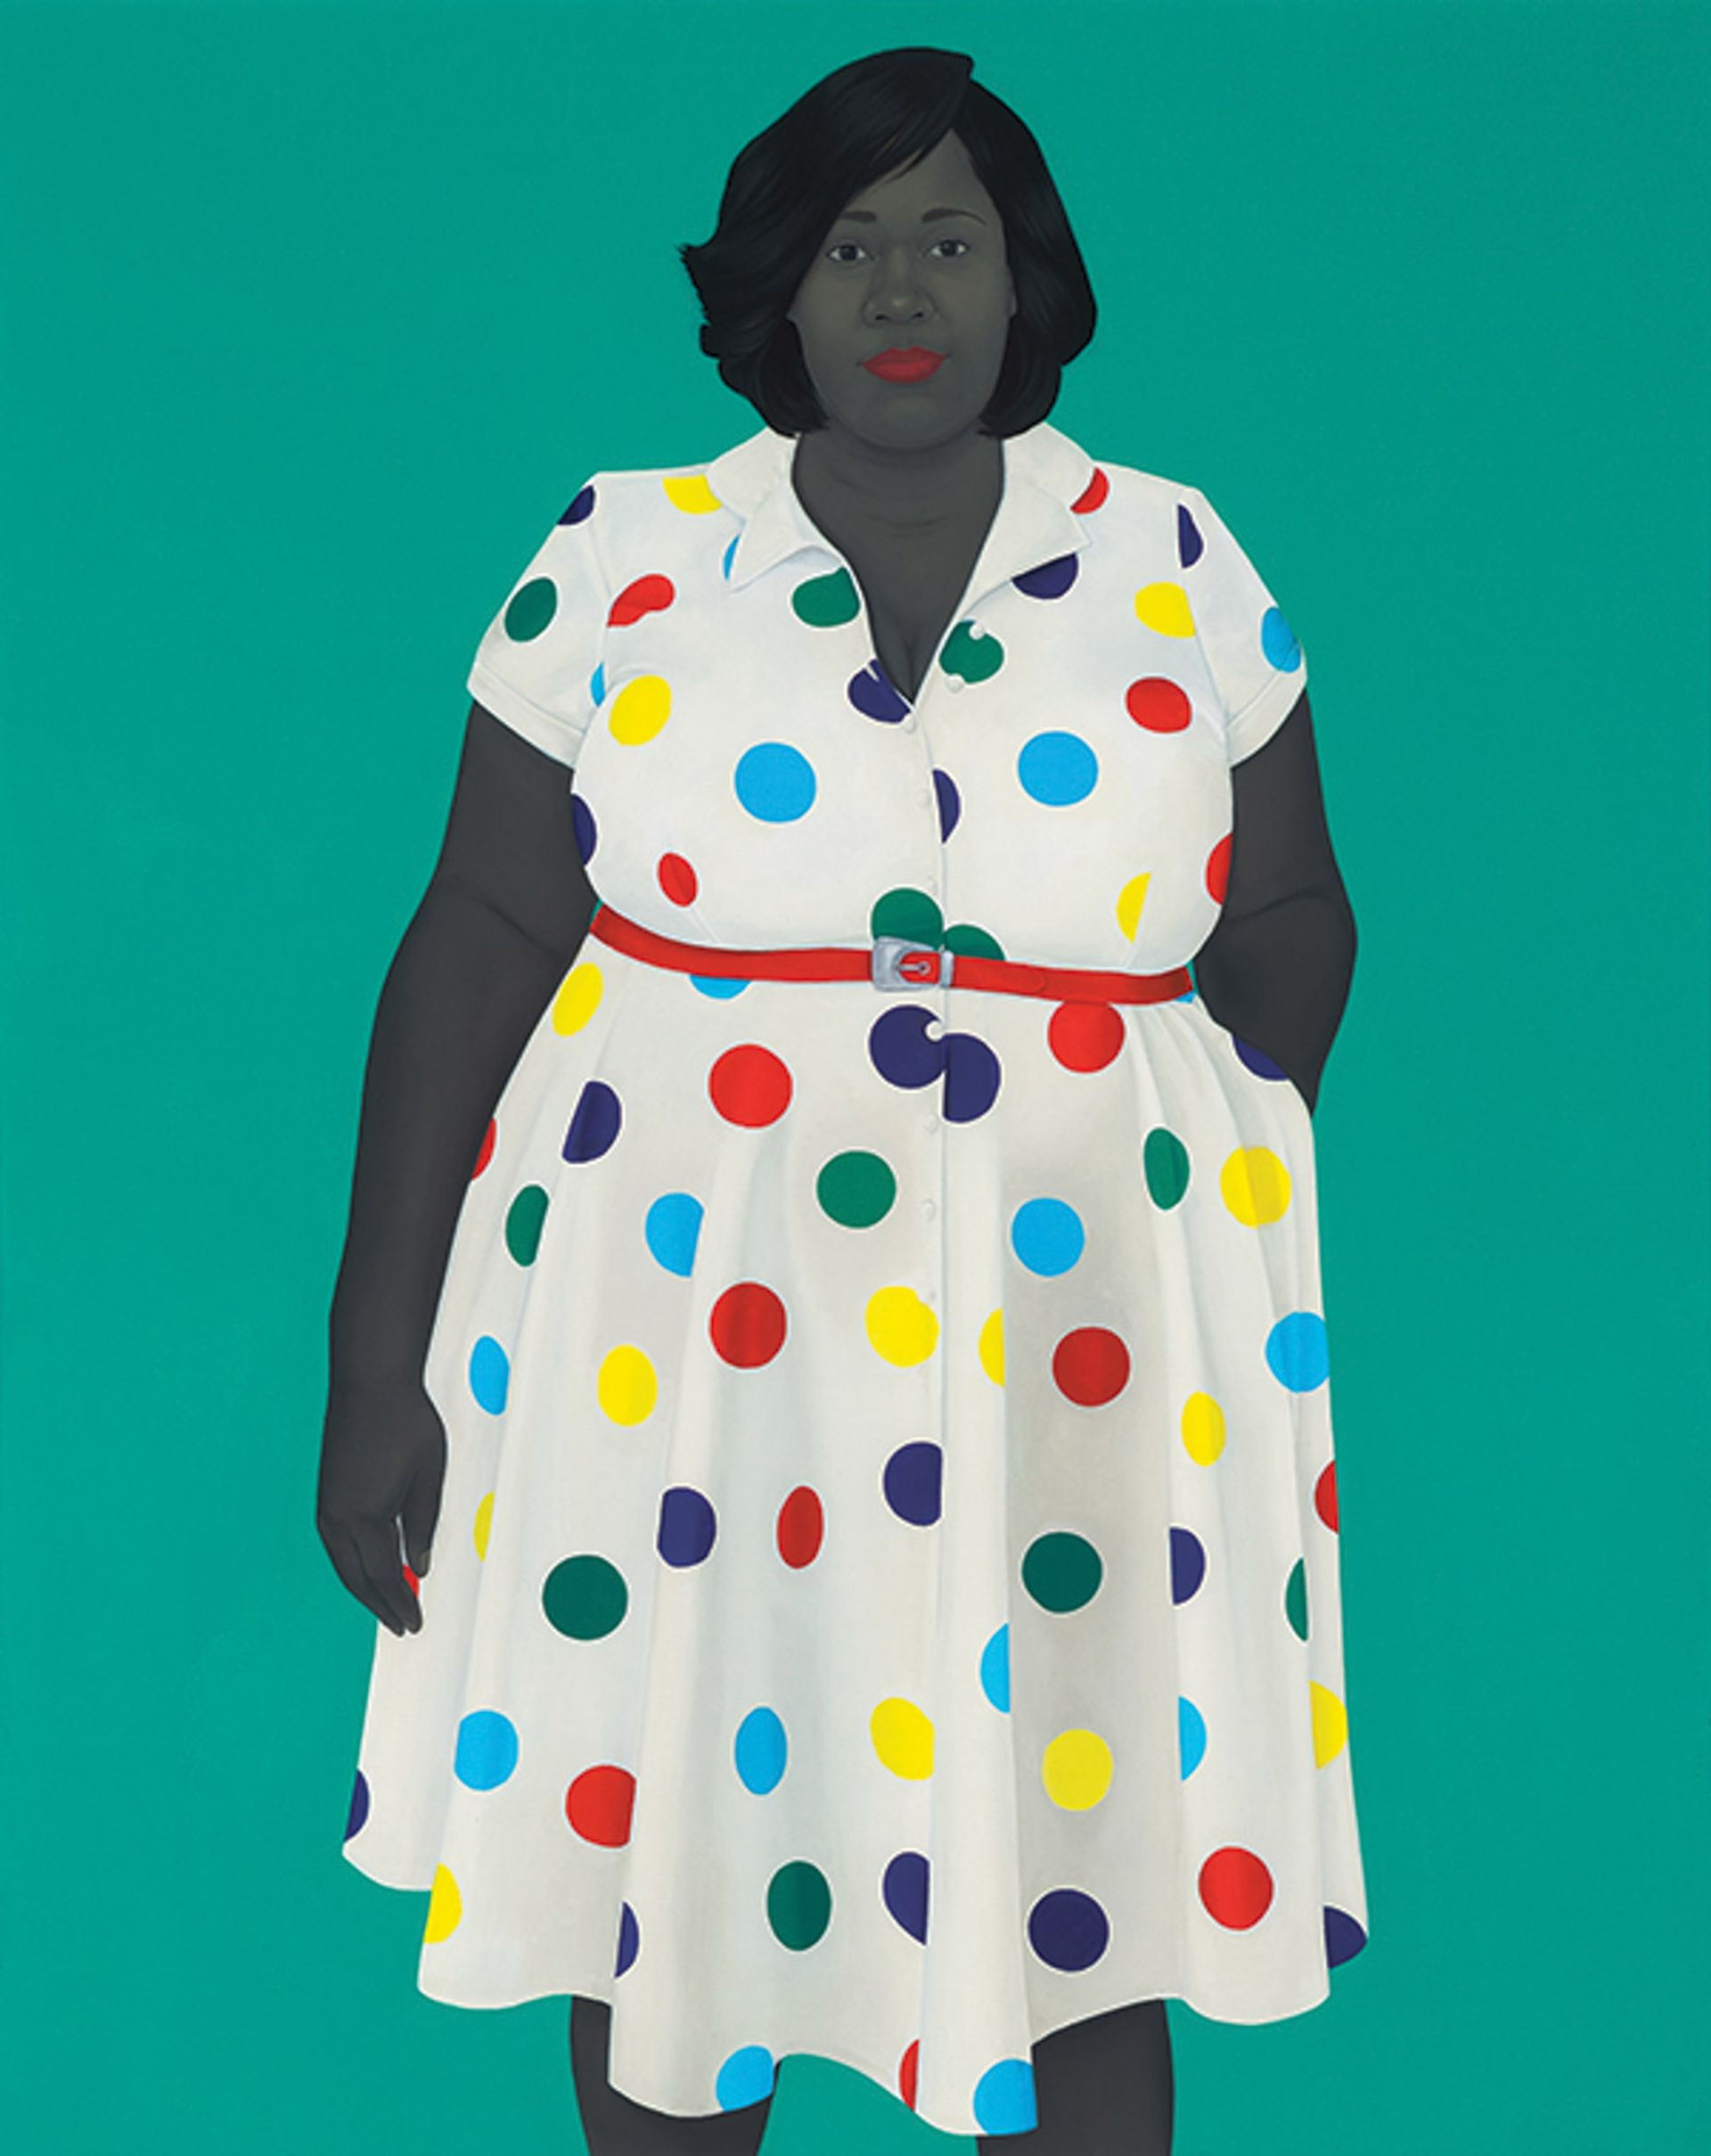 The Girl Next Door (2019) is among Sherald's series of large canvases © Amy Sherald Courtesy the artist and Hauser & Wirth Photo: Joseph Hyde